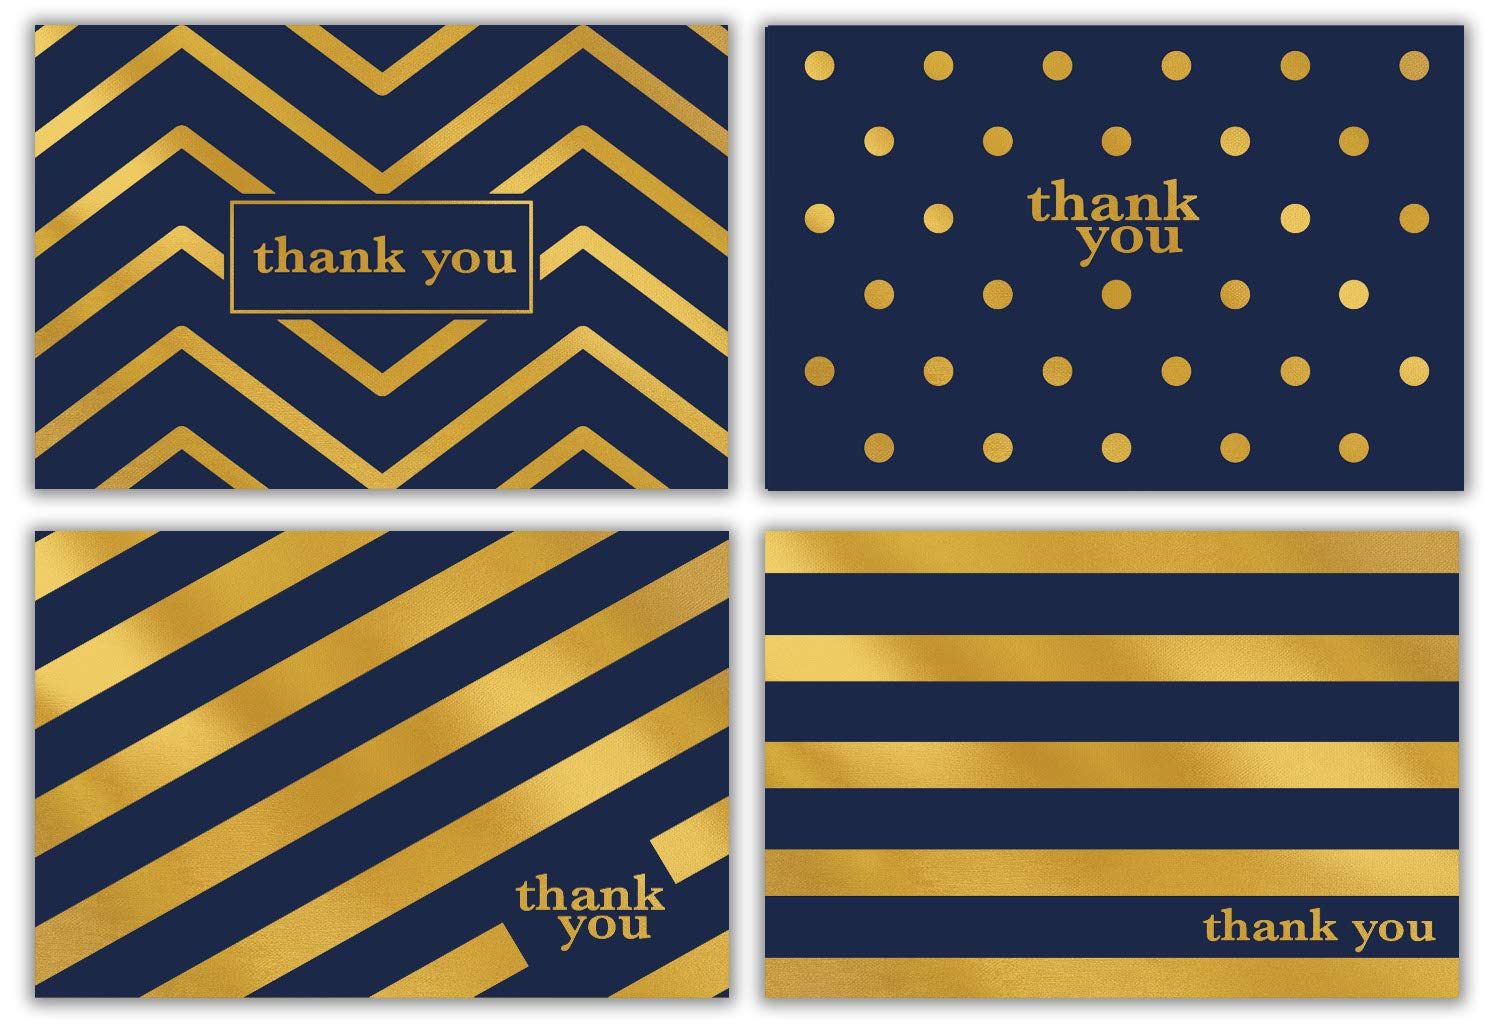 Gold Foil Thank You Cards Bulk 48 Thank You Notes w/Stickers & White Envelopes – 4x6 Blank Note Cards – Perfect for Weddings, Bridal Showers, Graduation, and Baby Showers